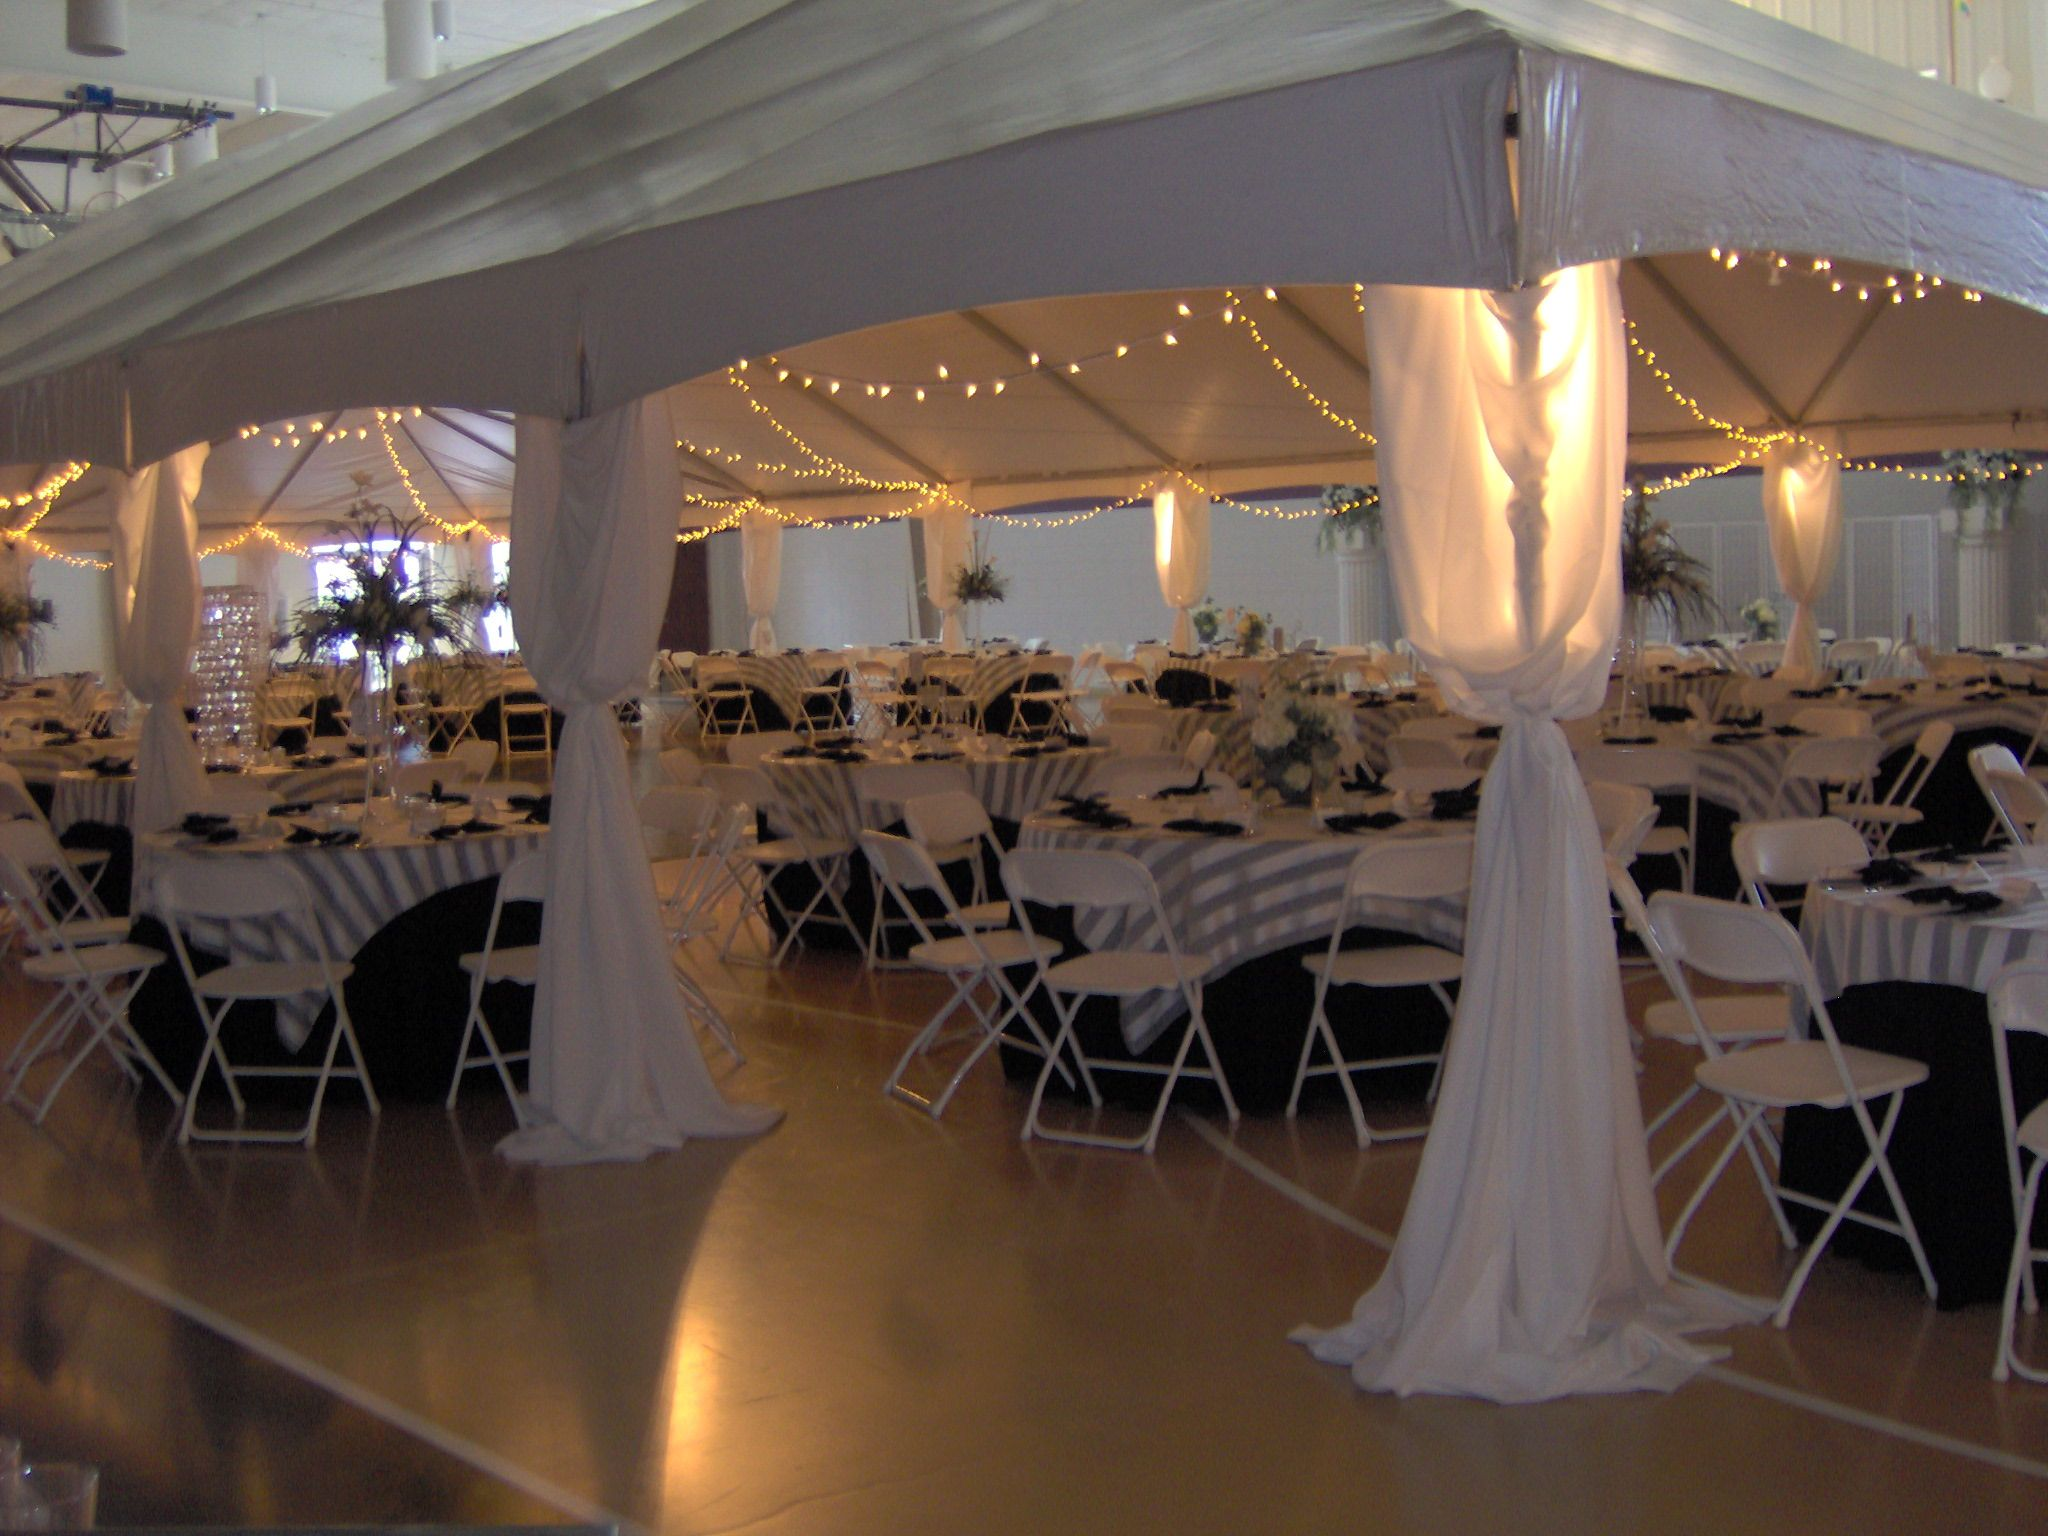 Tents Can Be Set Up Inside To Define A Space Such As This Wedding